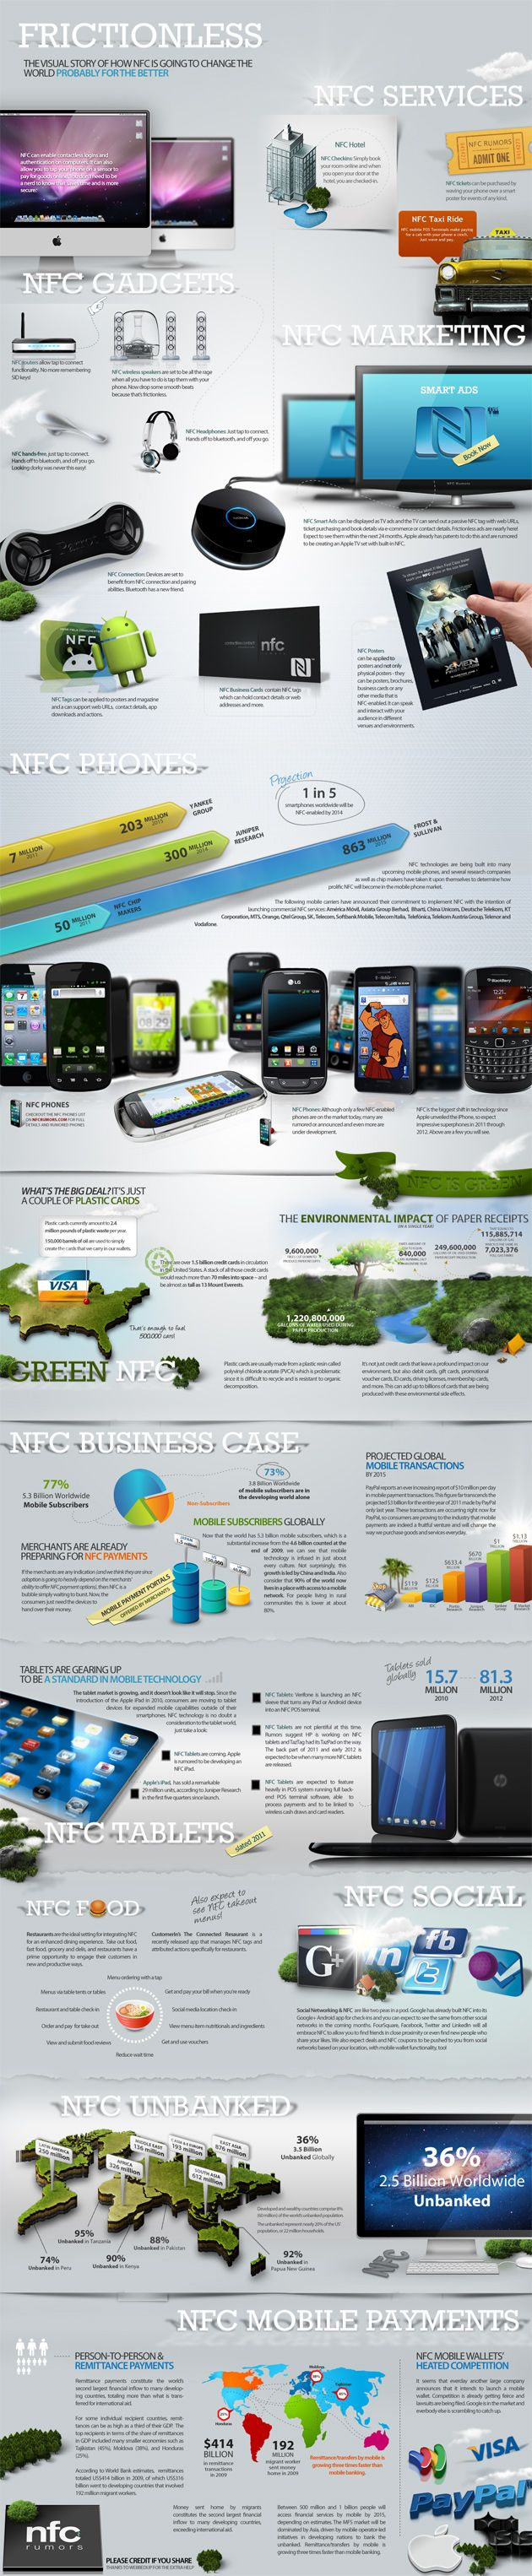 How NFC is going to change the world (NFC Infographic)